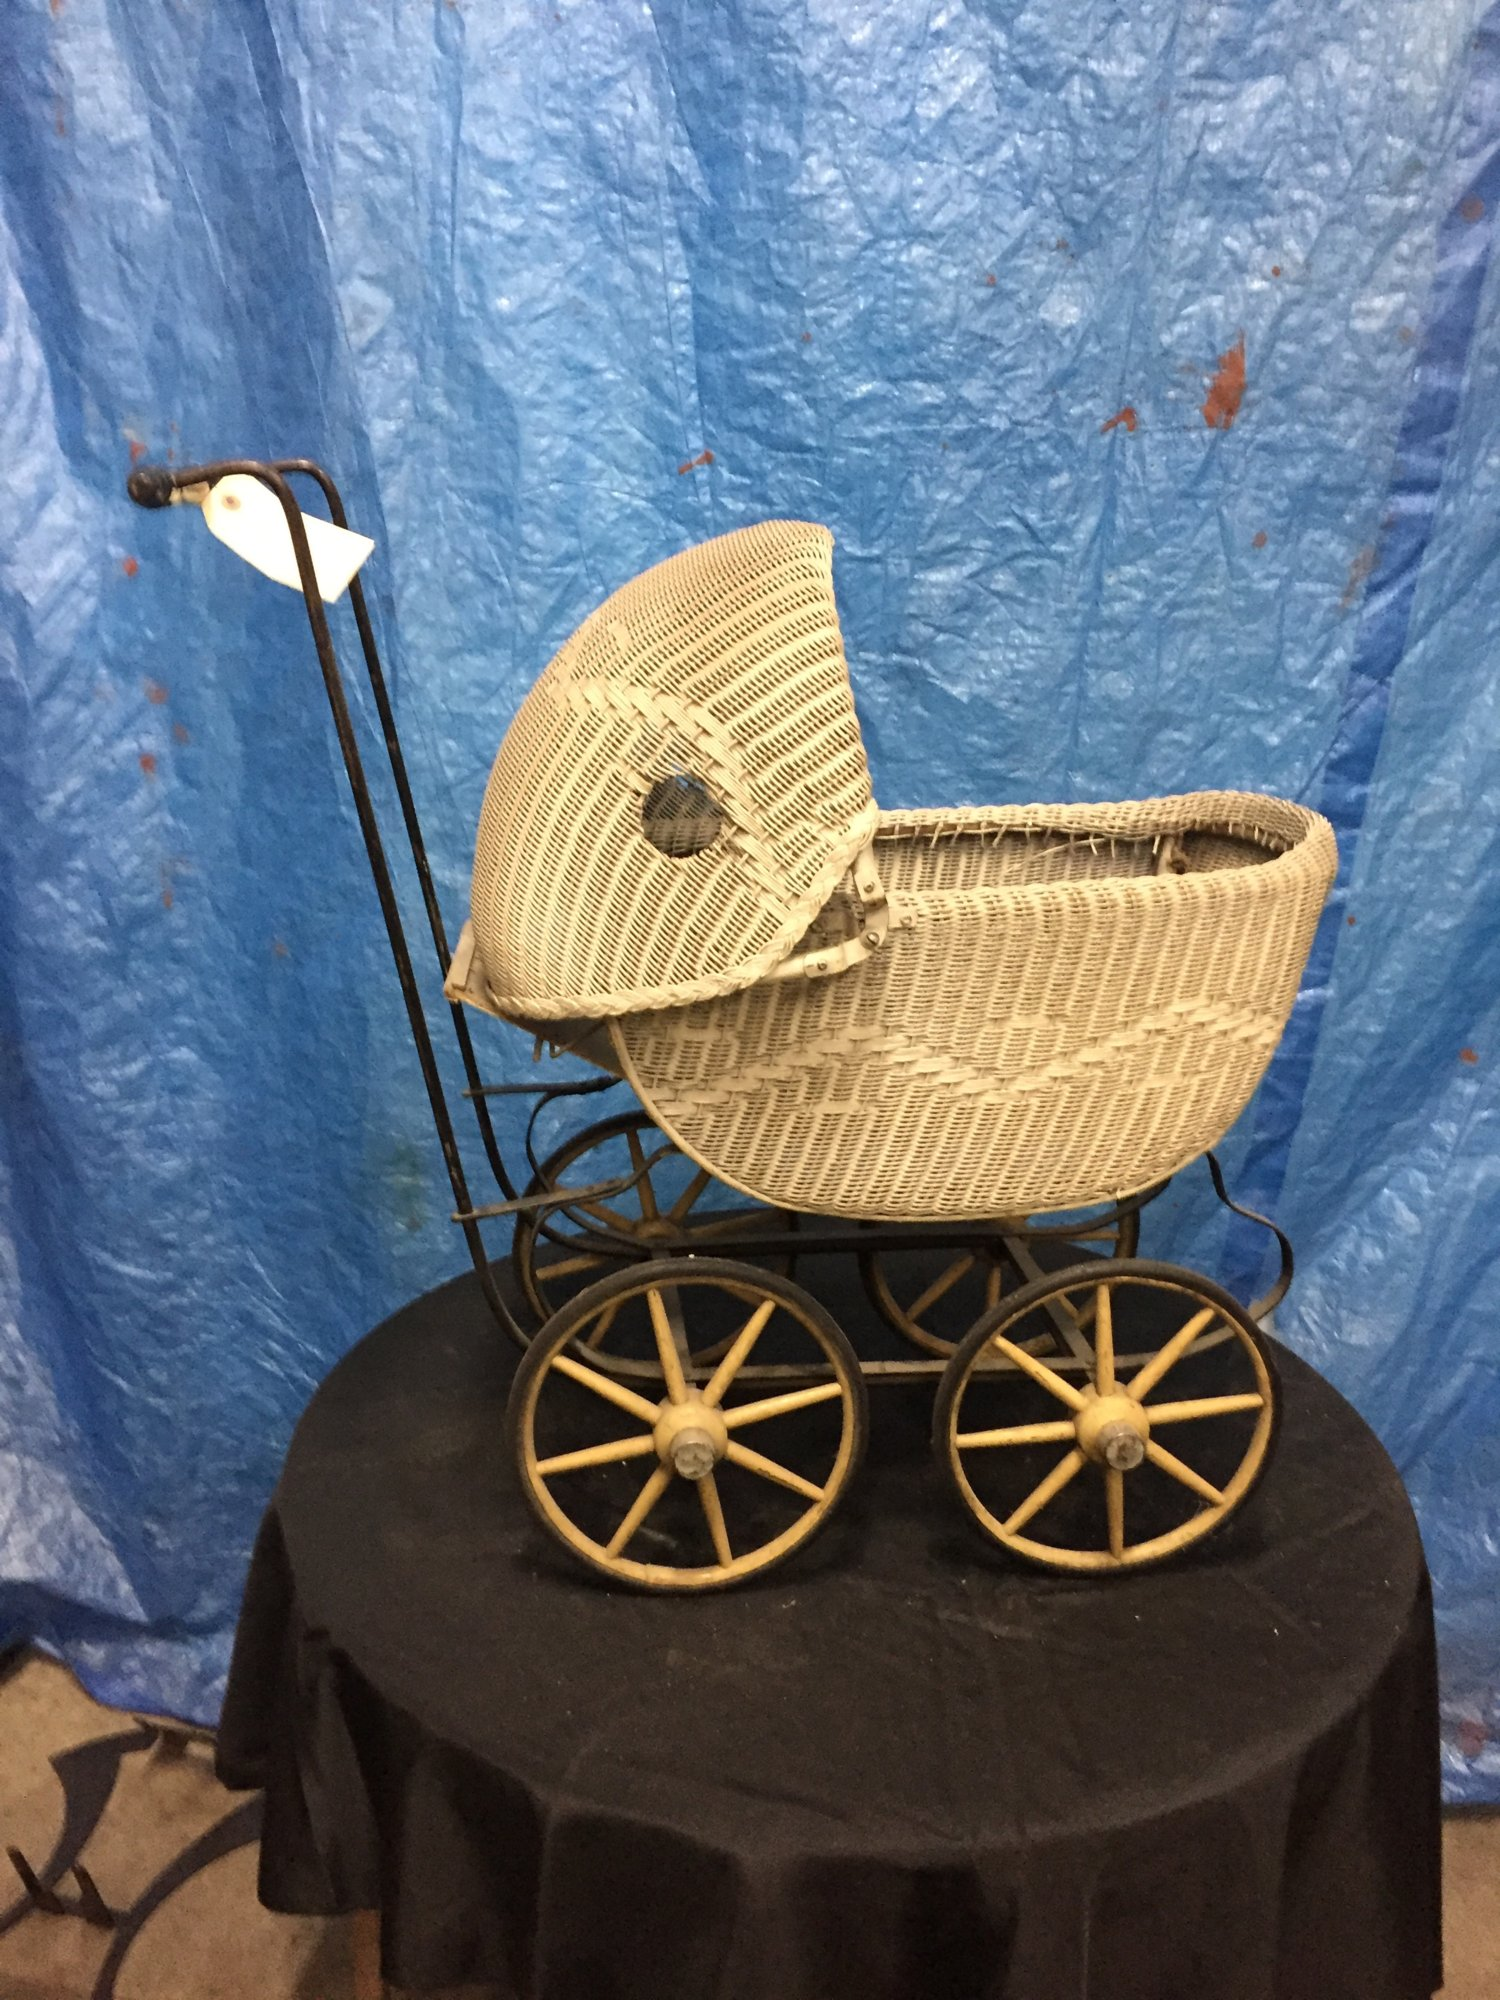 Vintage Antique Wicker Doll Carriage 1900's - $100.jpg